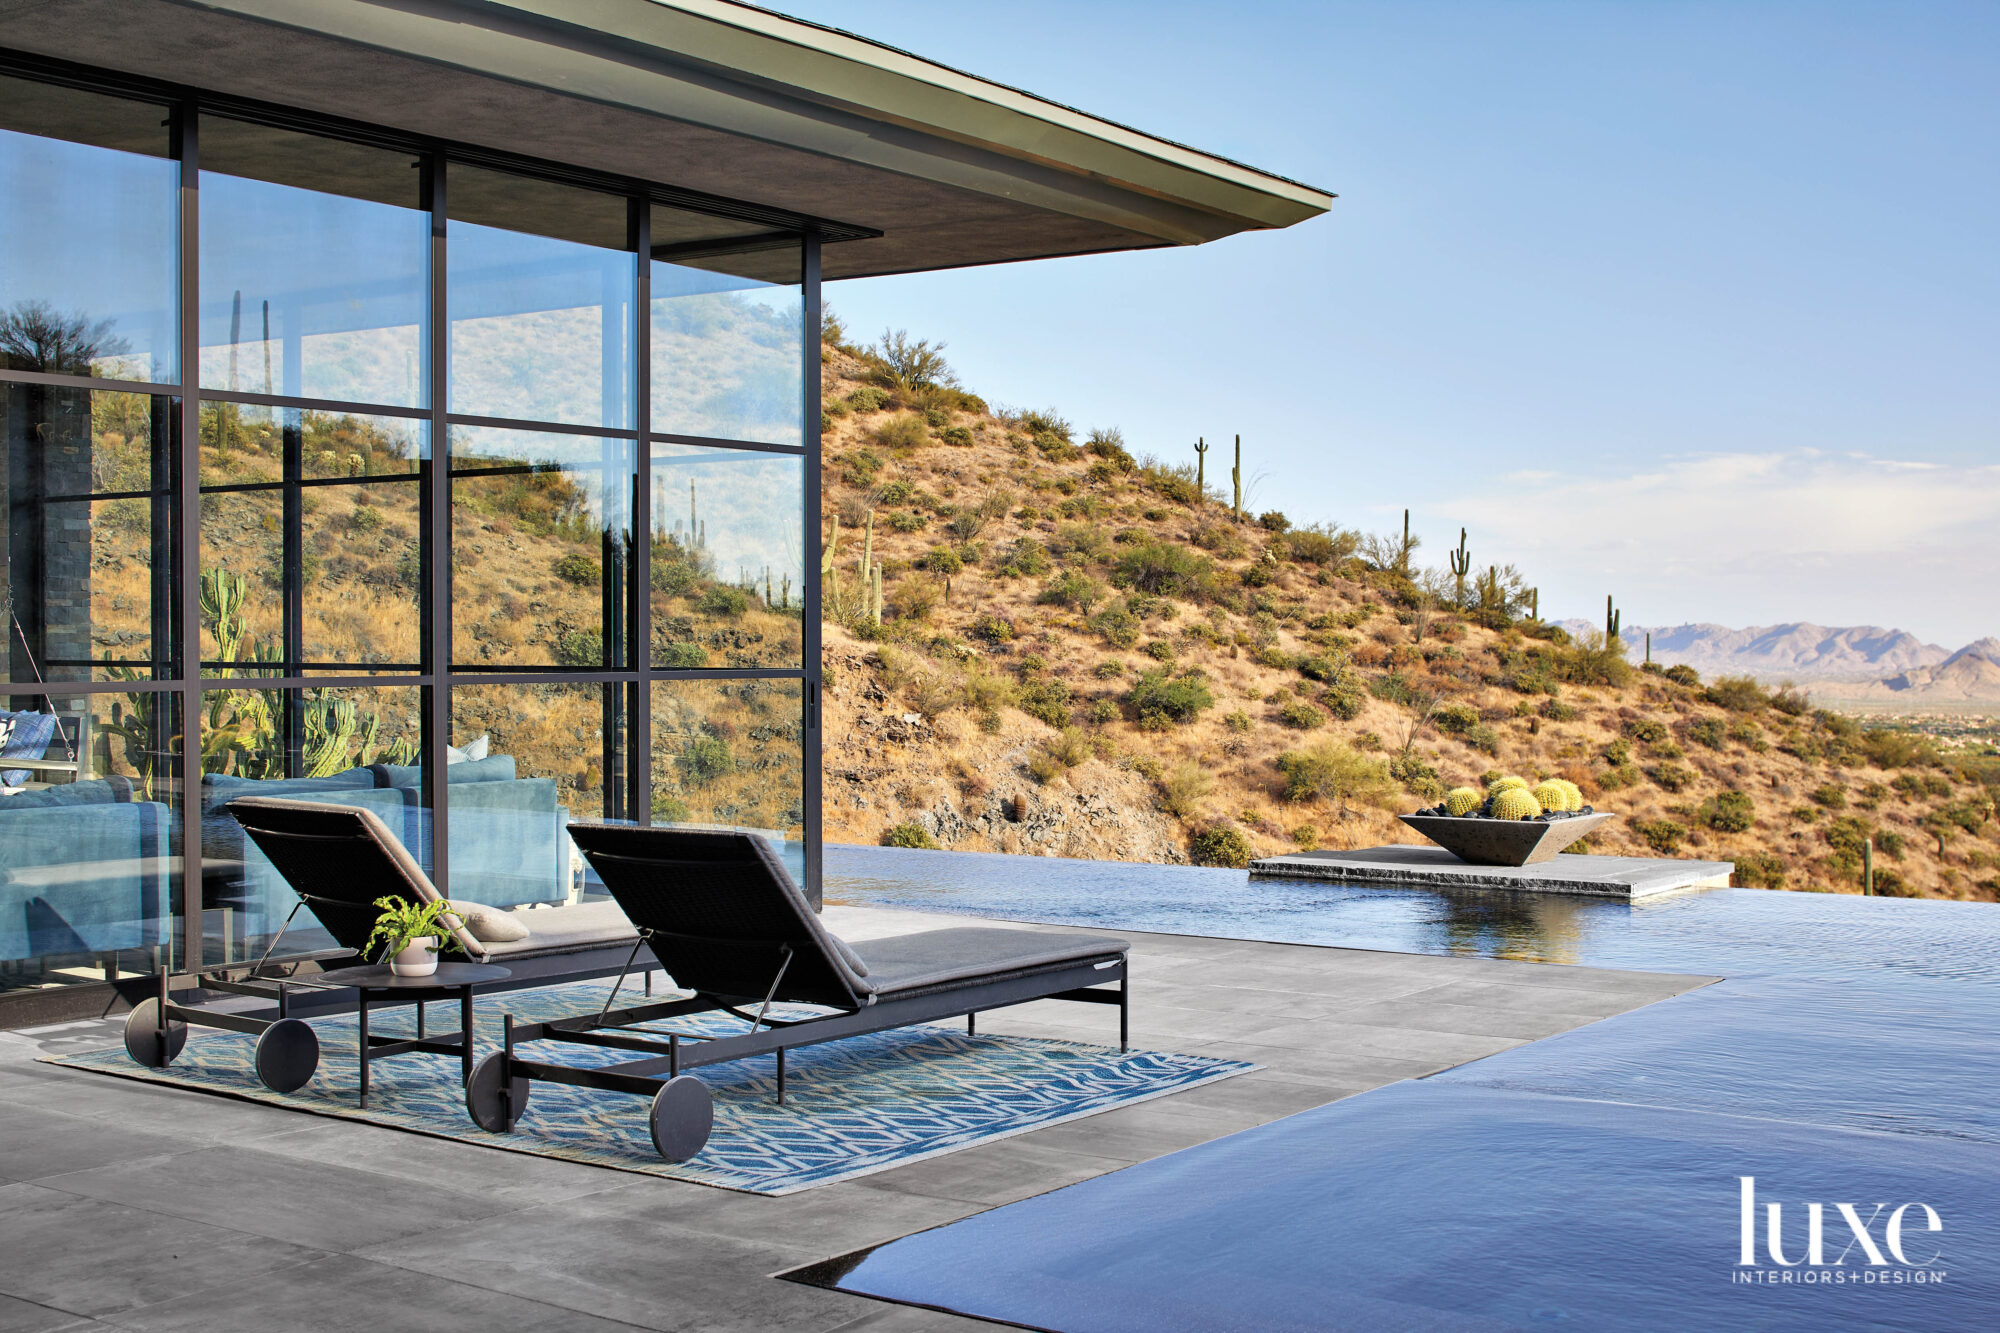 Two lounge chairs on the patio overlook an infinity pool and the mountains beyond.